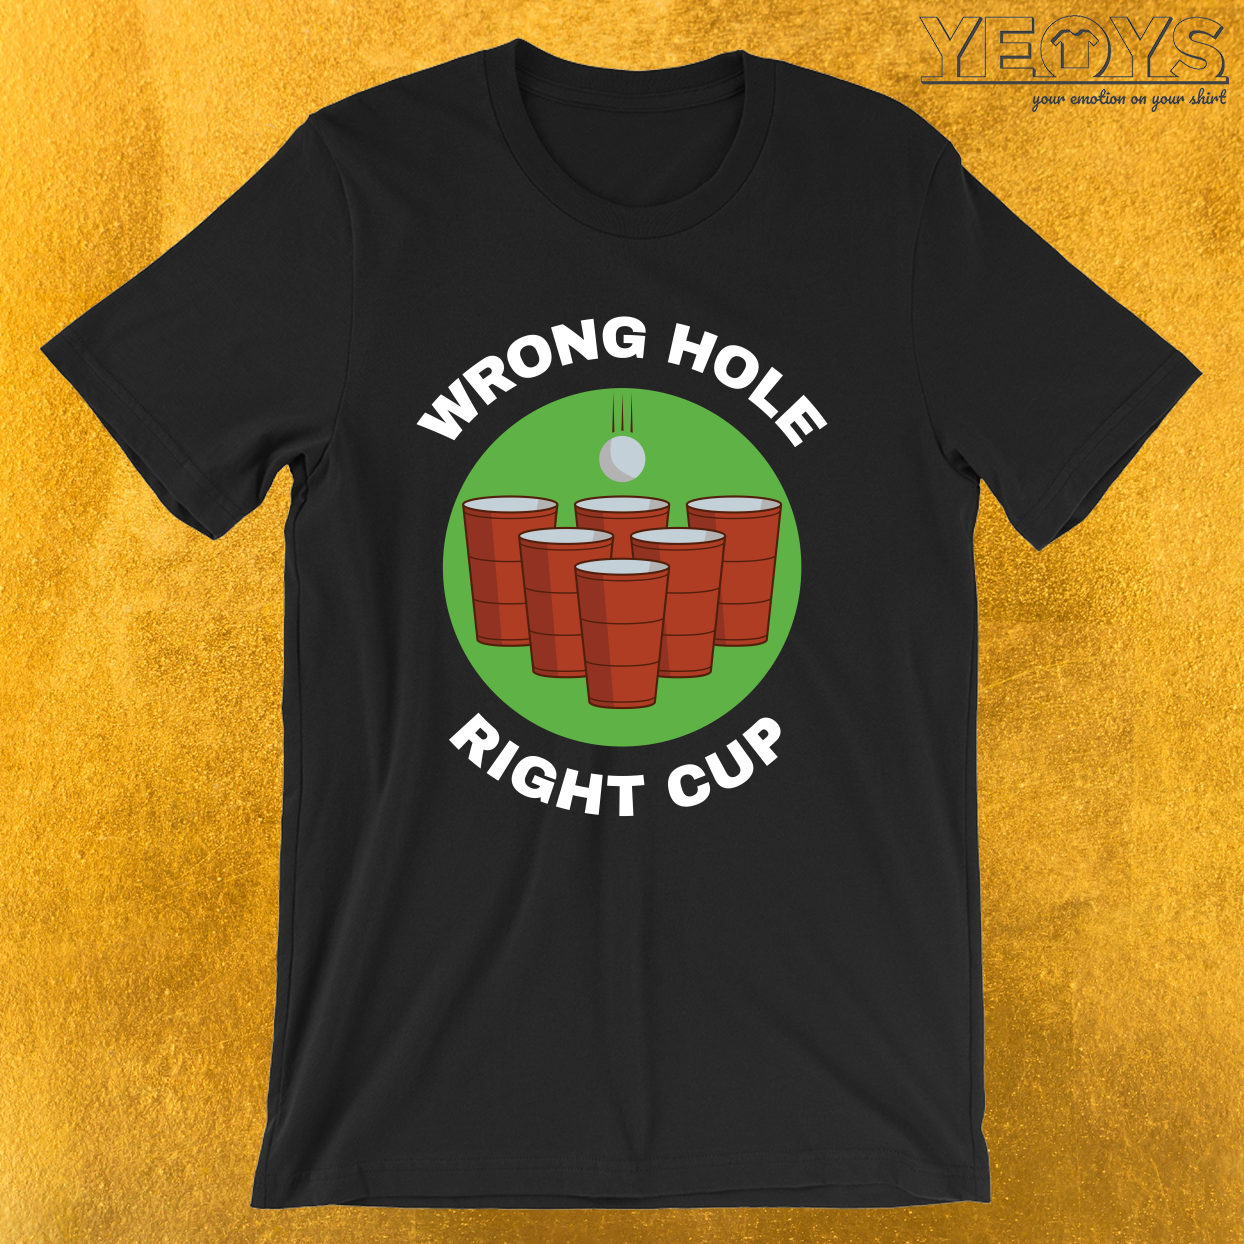 Wrong Hole Right Cup – Funny Beer Pong Tee